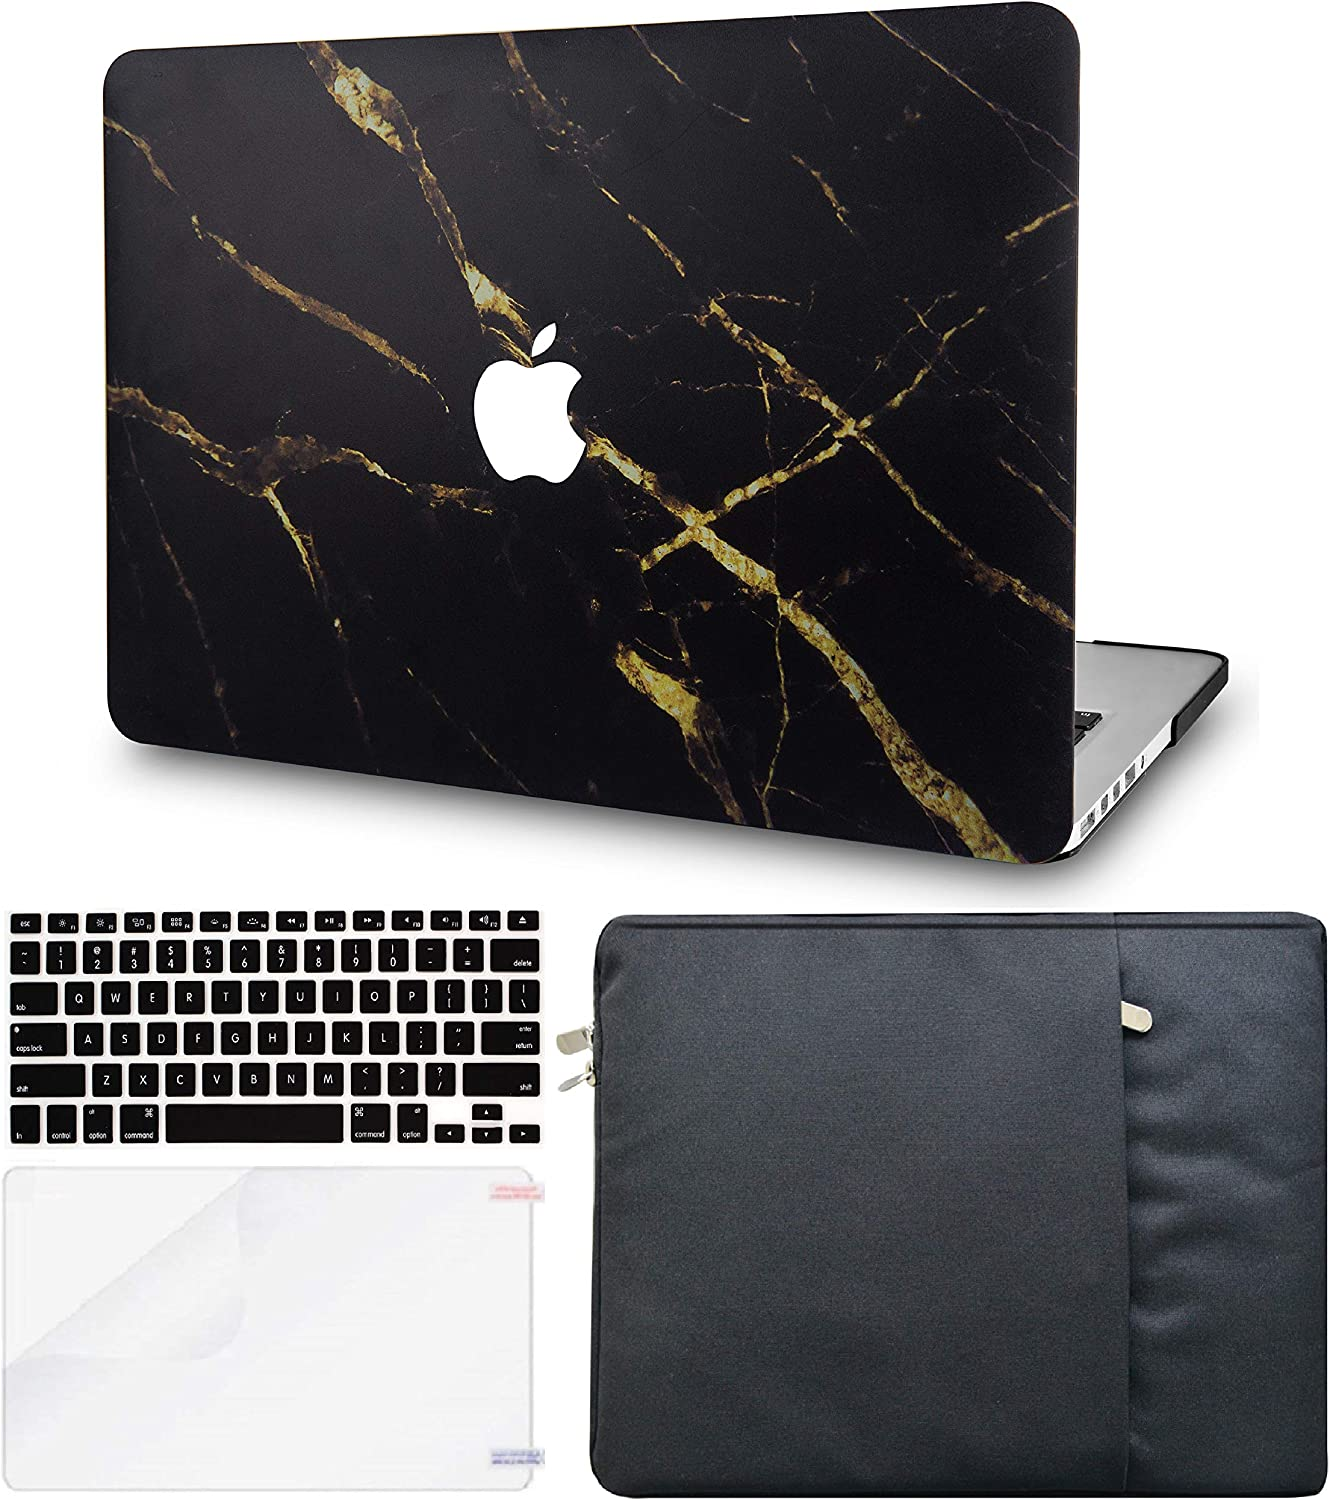 LuvCase 4 in 1 Laptop Case for MacBook Air 13 Inch (Touch ID) (2018-2020) A1932 Retina Display Hard Shell Cover, Sleeve, Keyboard Cover & Screen Protector (Black Gold Marble)